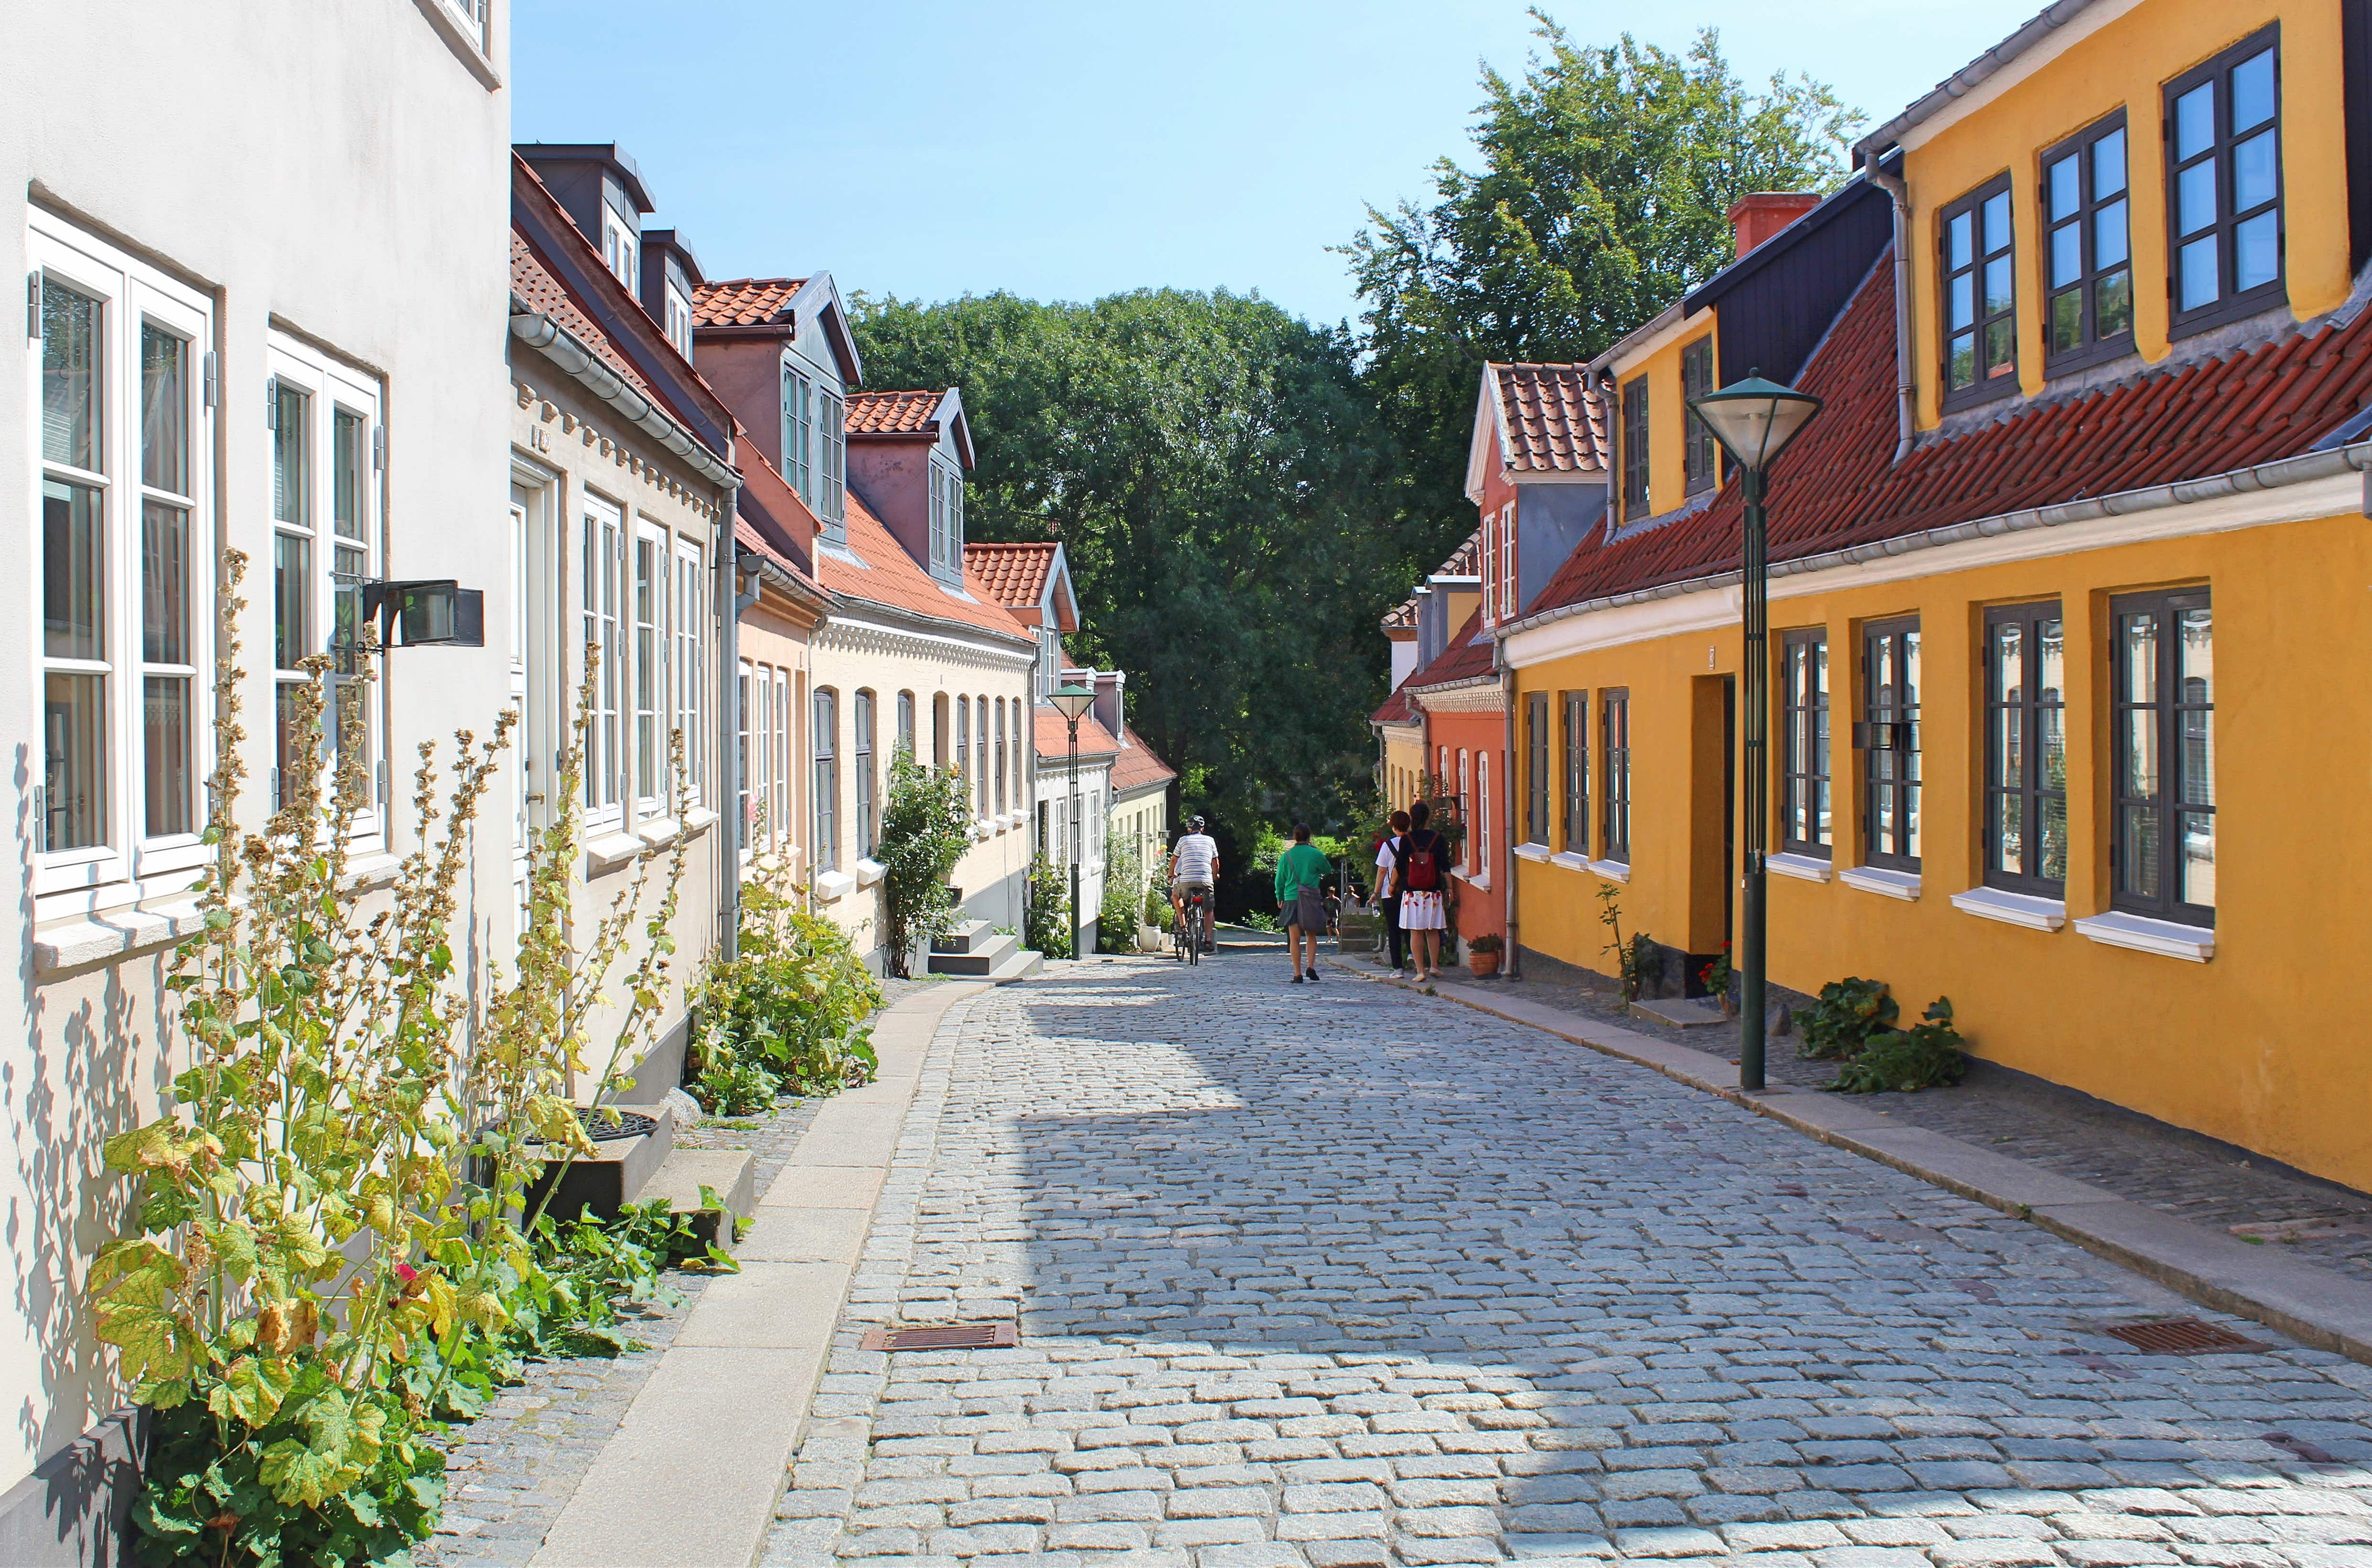 Why Odense, Denmark, should be on your 2020 travel list